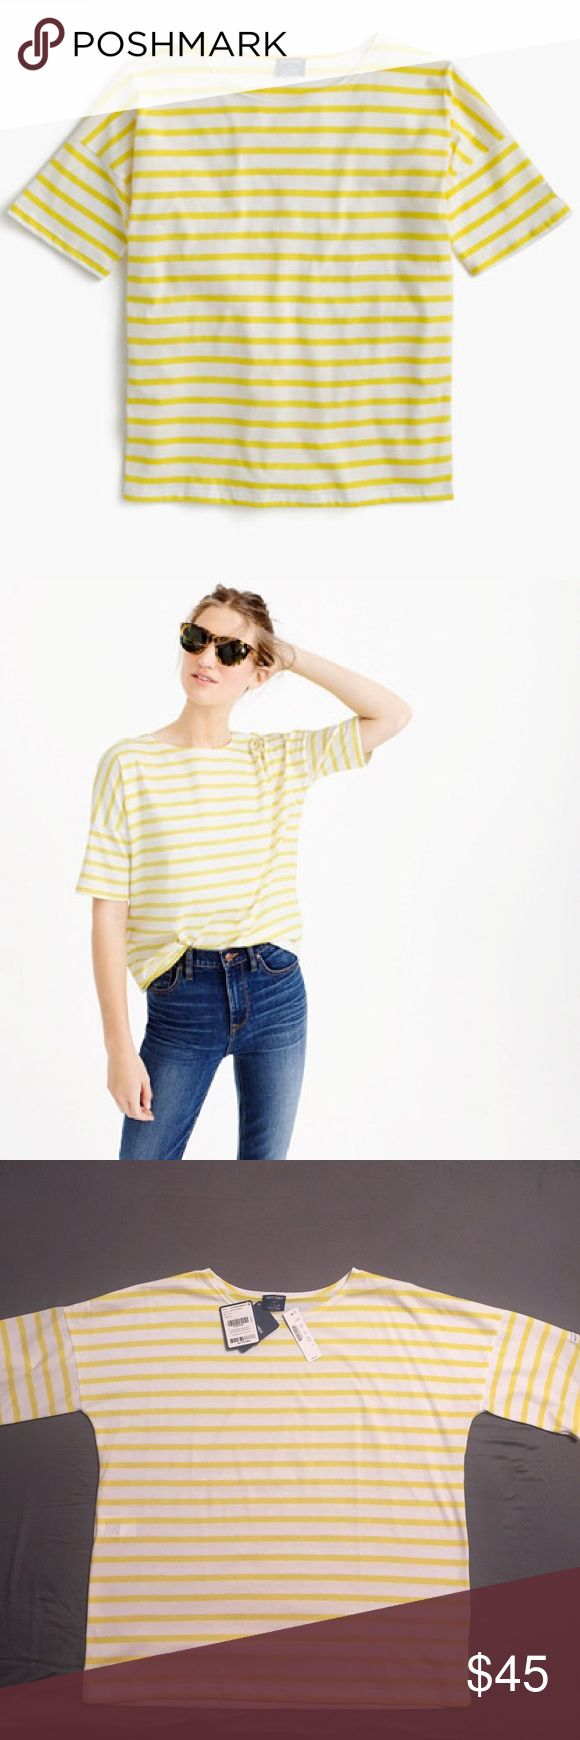 Saint James®for J.Crew short sleeve slouchy Tshirt NWT/ mark on label/ PRODUCT DETAILS Saint James has been spinning some of the world's finest knits out of its Normandy-based factory since 1889 and has become famous for its Breton shirt, a nautical-inspired style featuring classic stripes. Designed exclusively for us, this airy cotton version features a roomy body and slimmer sleeves.   Cotton. Machine wash. Made in France. Item C7597. J. Crew Tops Tees - Short Sleeve